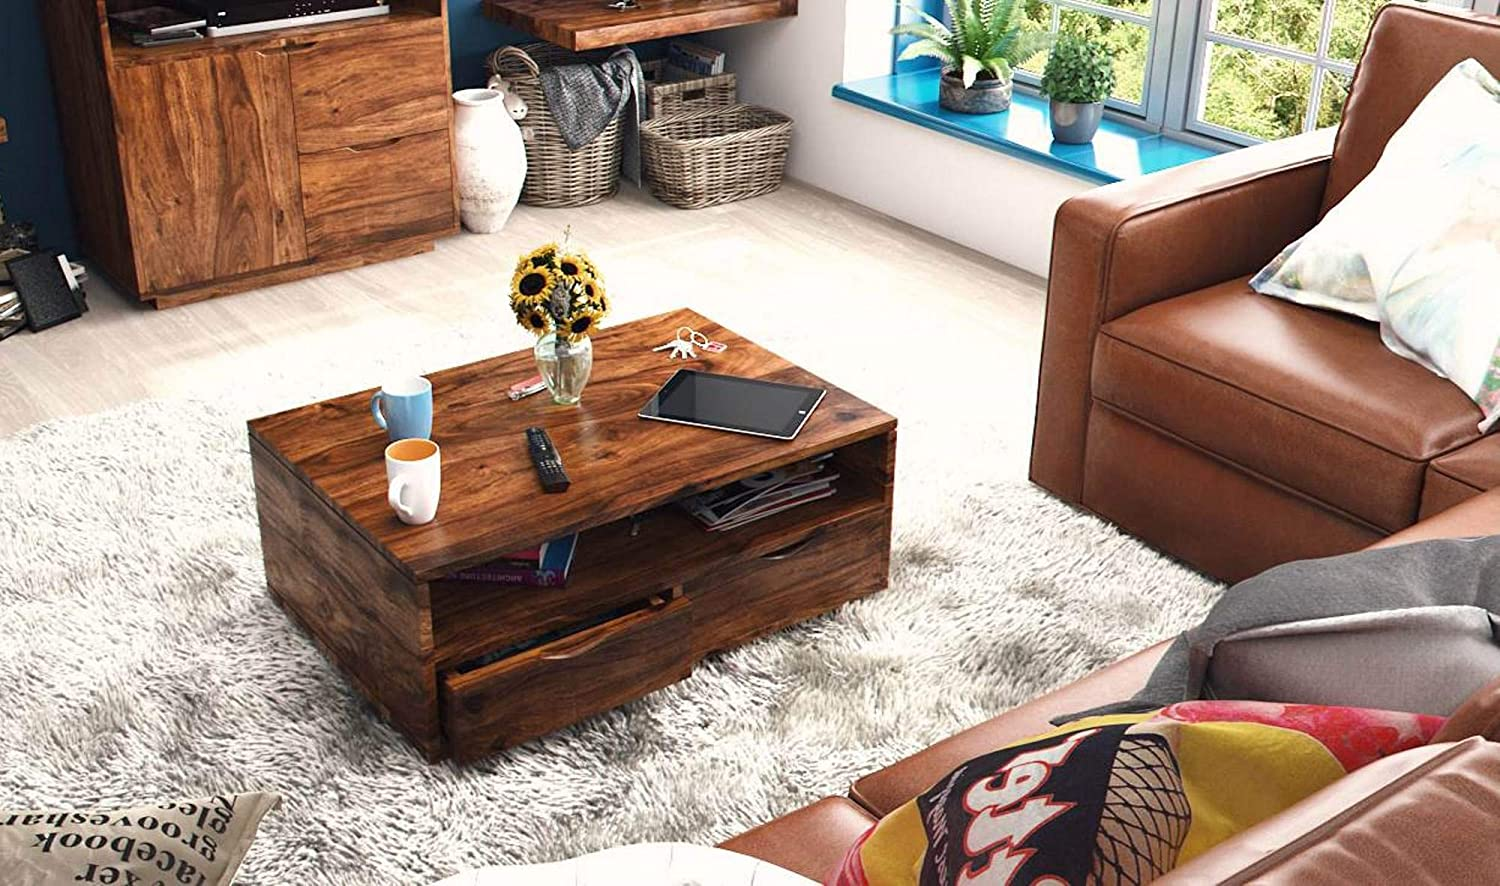 WOODSTAGE Wooden Furniture Coffe Table | Teapoy | Center Table with Drawer  Storage Shelf | Office Table for Living Room Hall (Sheesham_Mahogany):  Amazon.in: Home & Kitchen